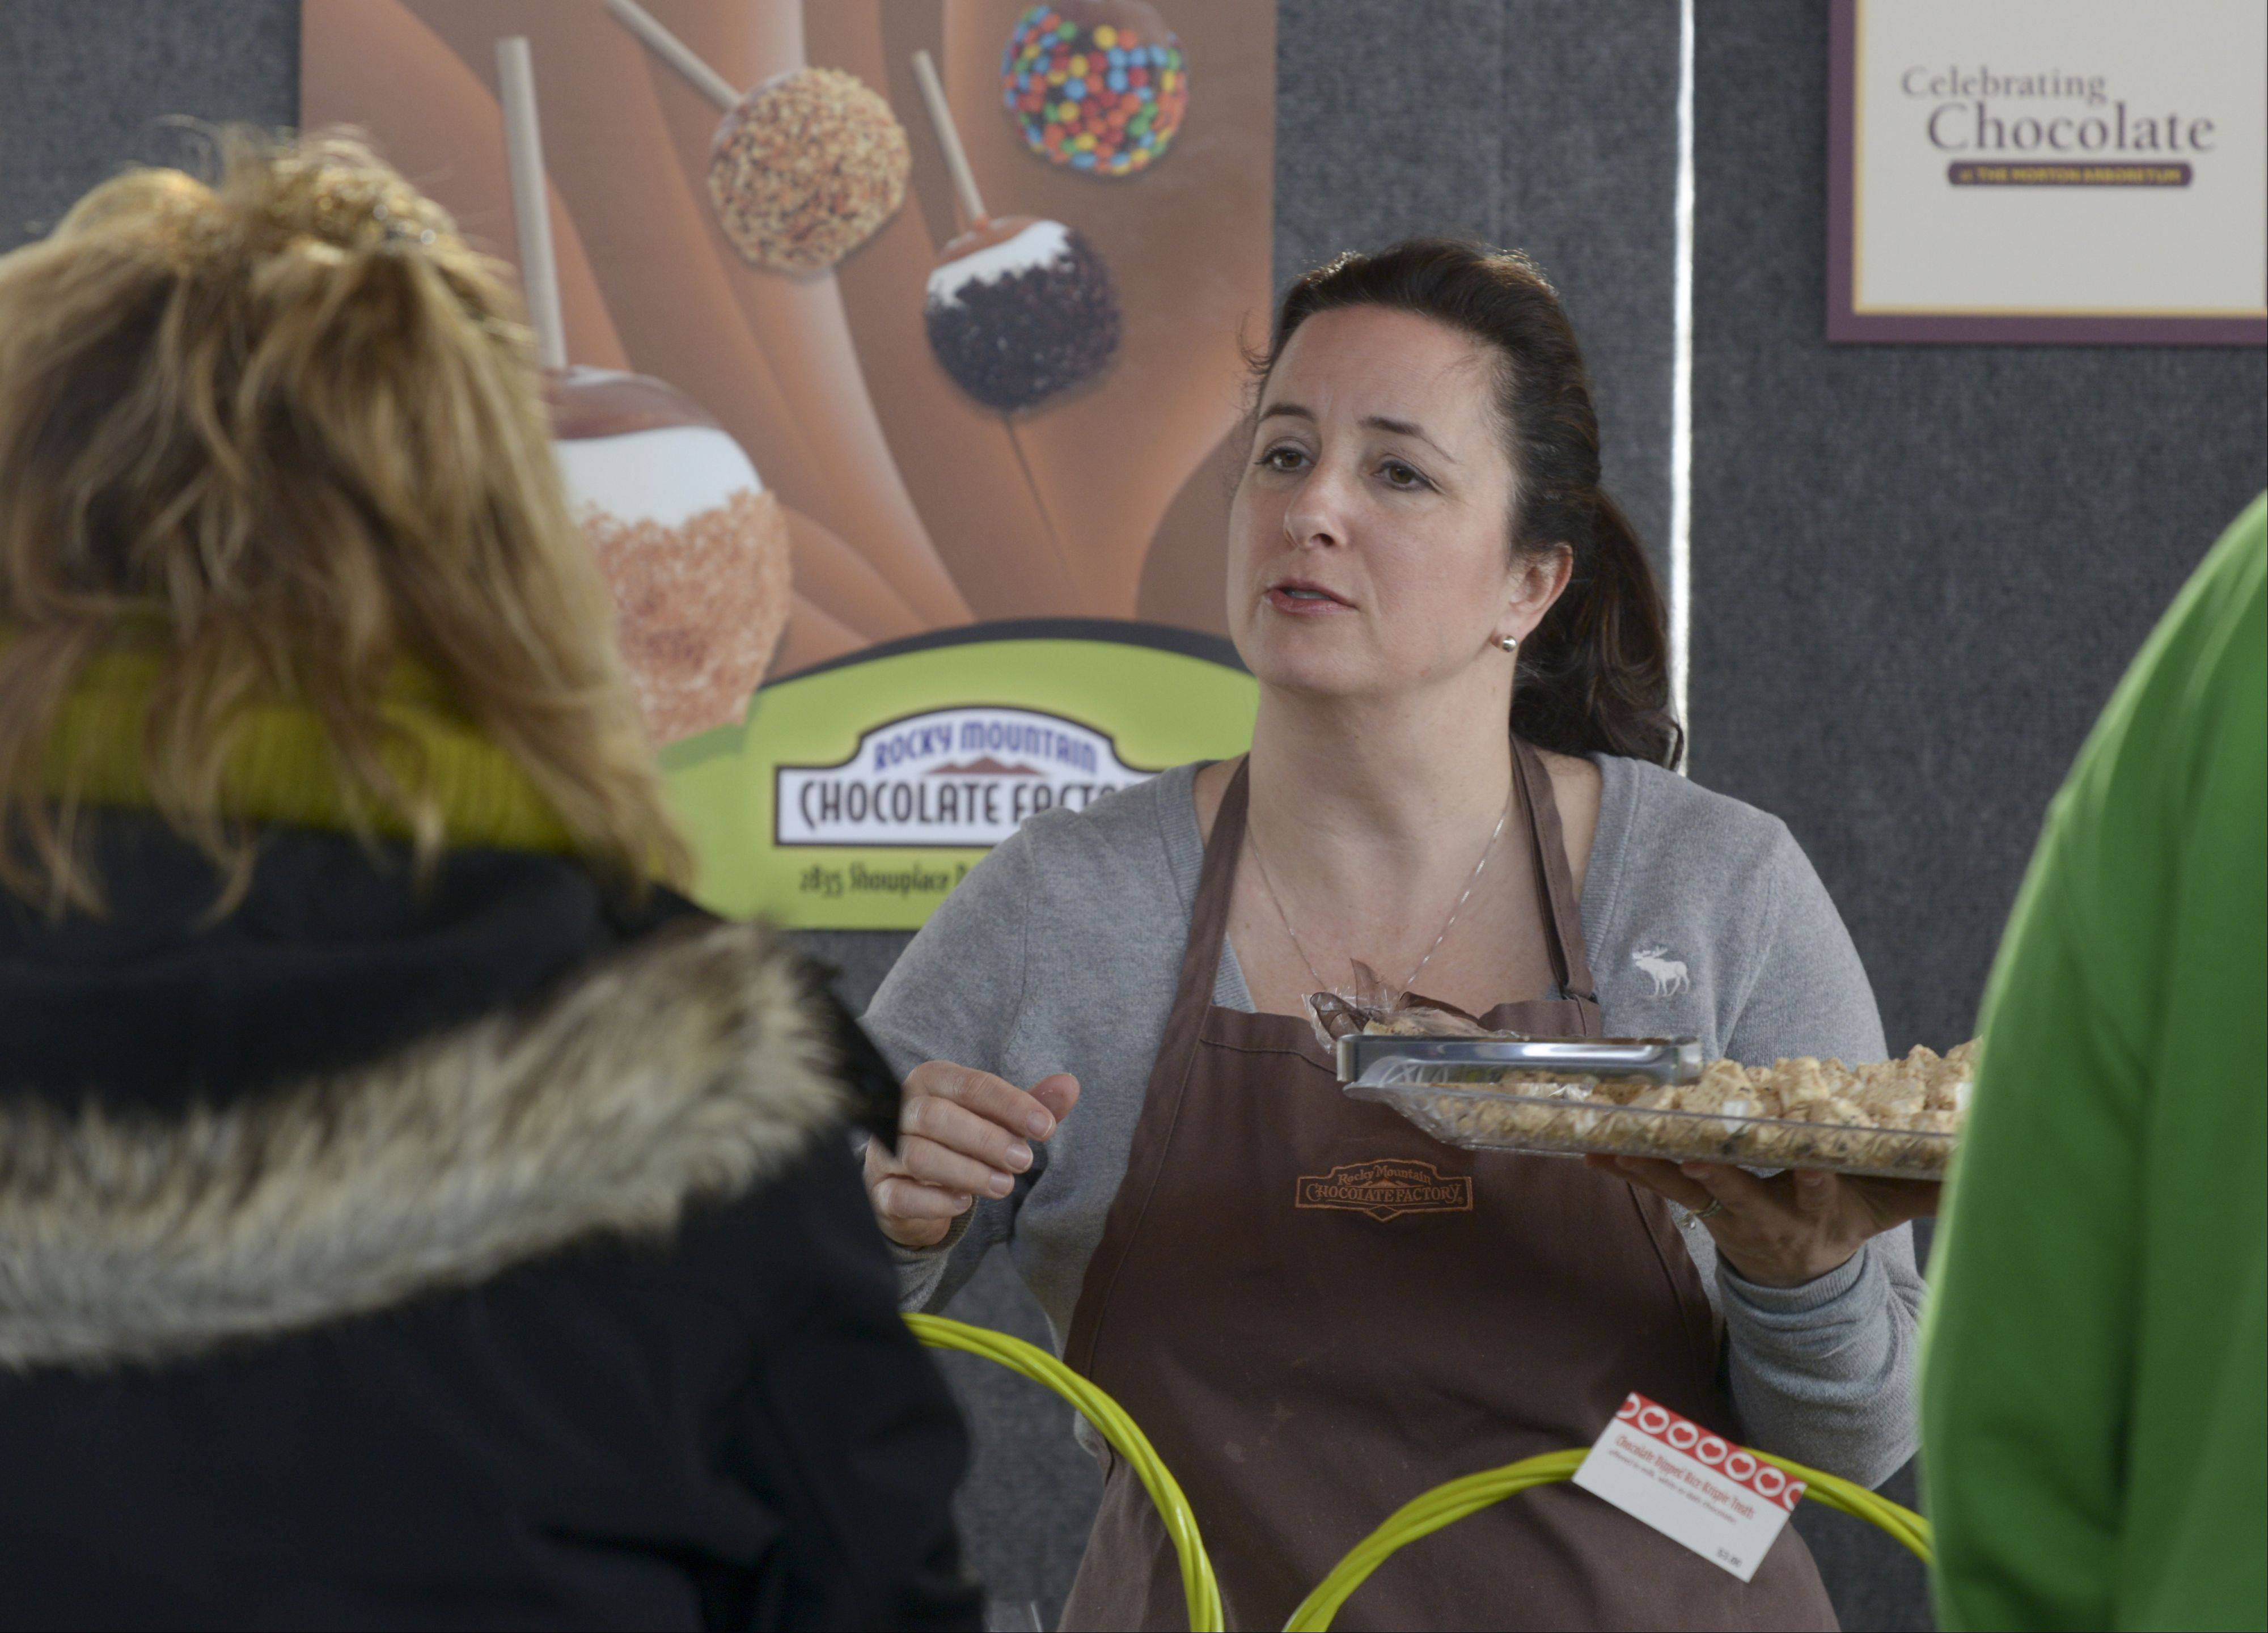 Heather Mansholt, owner of Rocky Mountain Chocolate Factory in Naperville, hands out samples Sunday during the Morton Arboretum's Chocolate Expo and Market. The event featured nearly 20 vendors offering different chocolate concoctions.